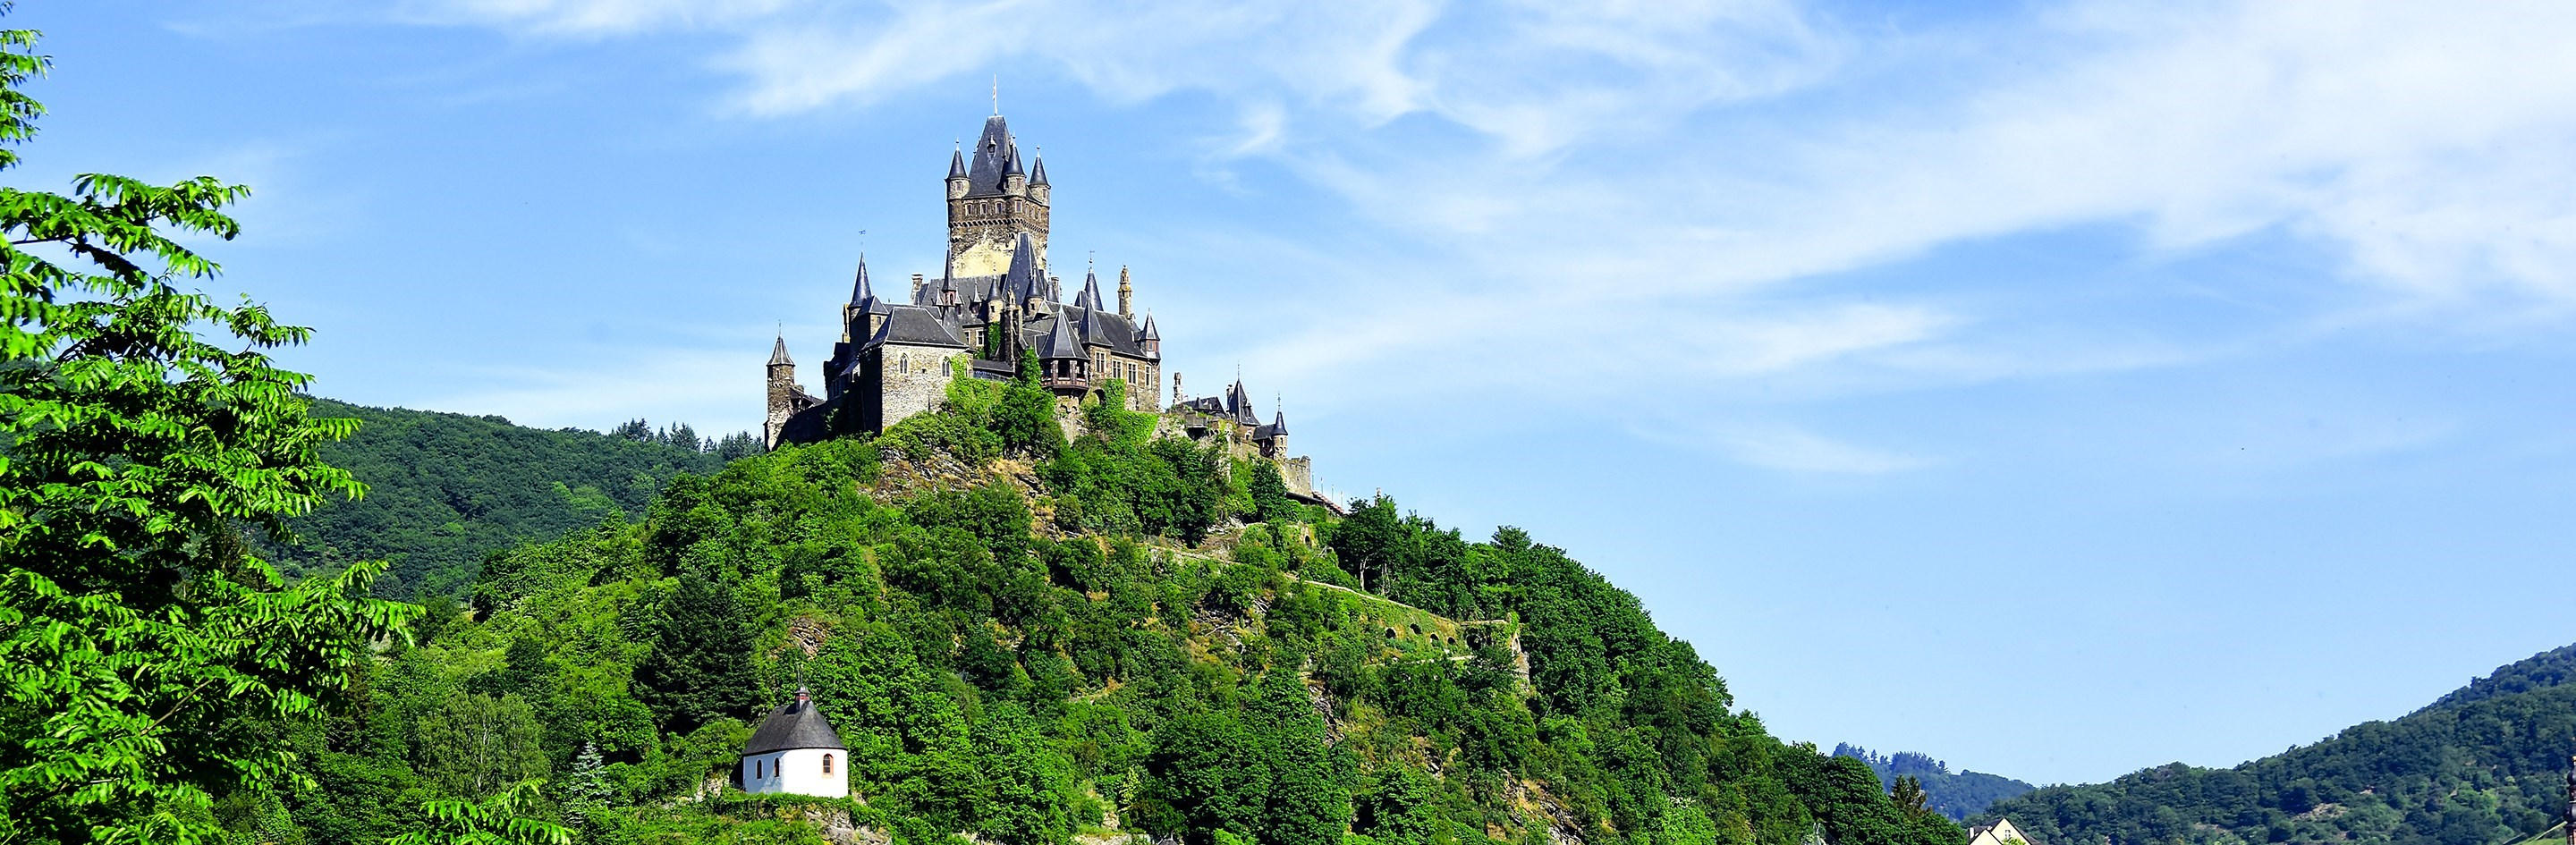 Necessary words... Escorted europe castle tours agree